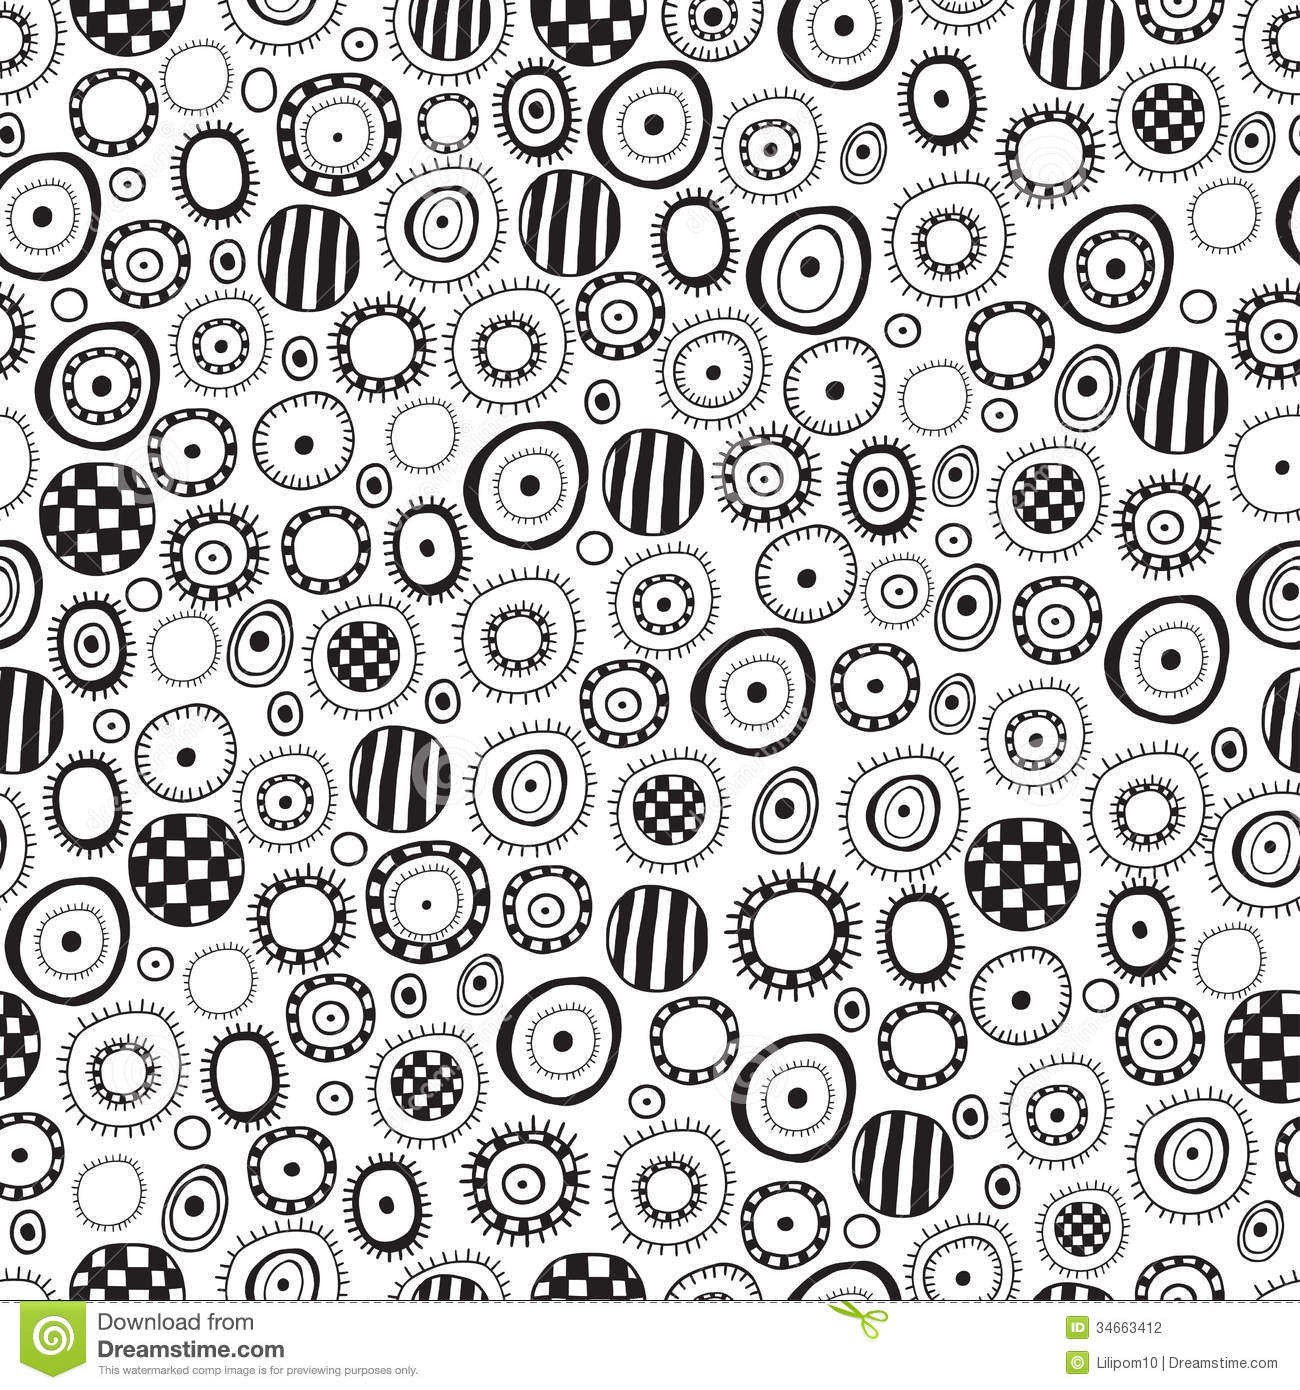 18 Black And White Abstract Designs Pattern Images Black And White